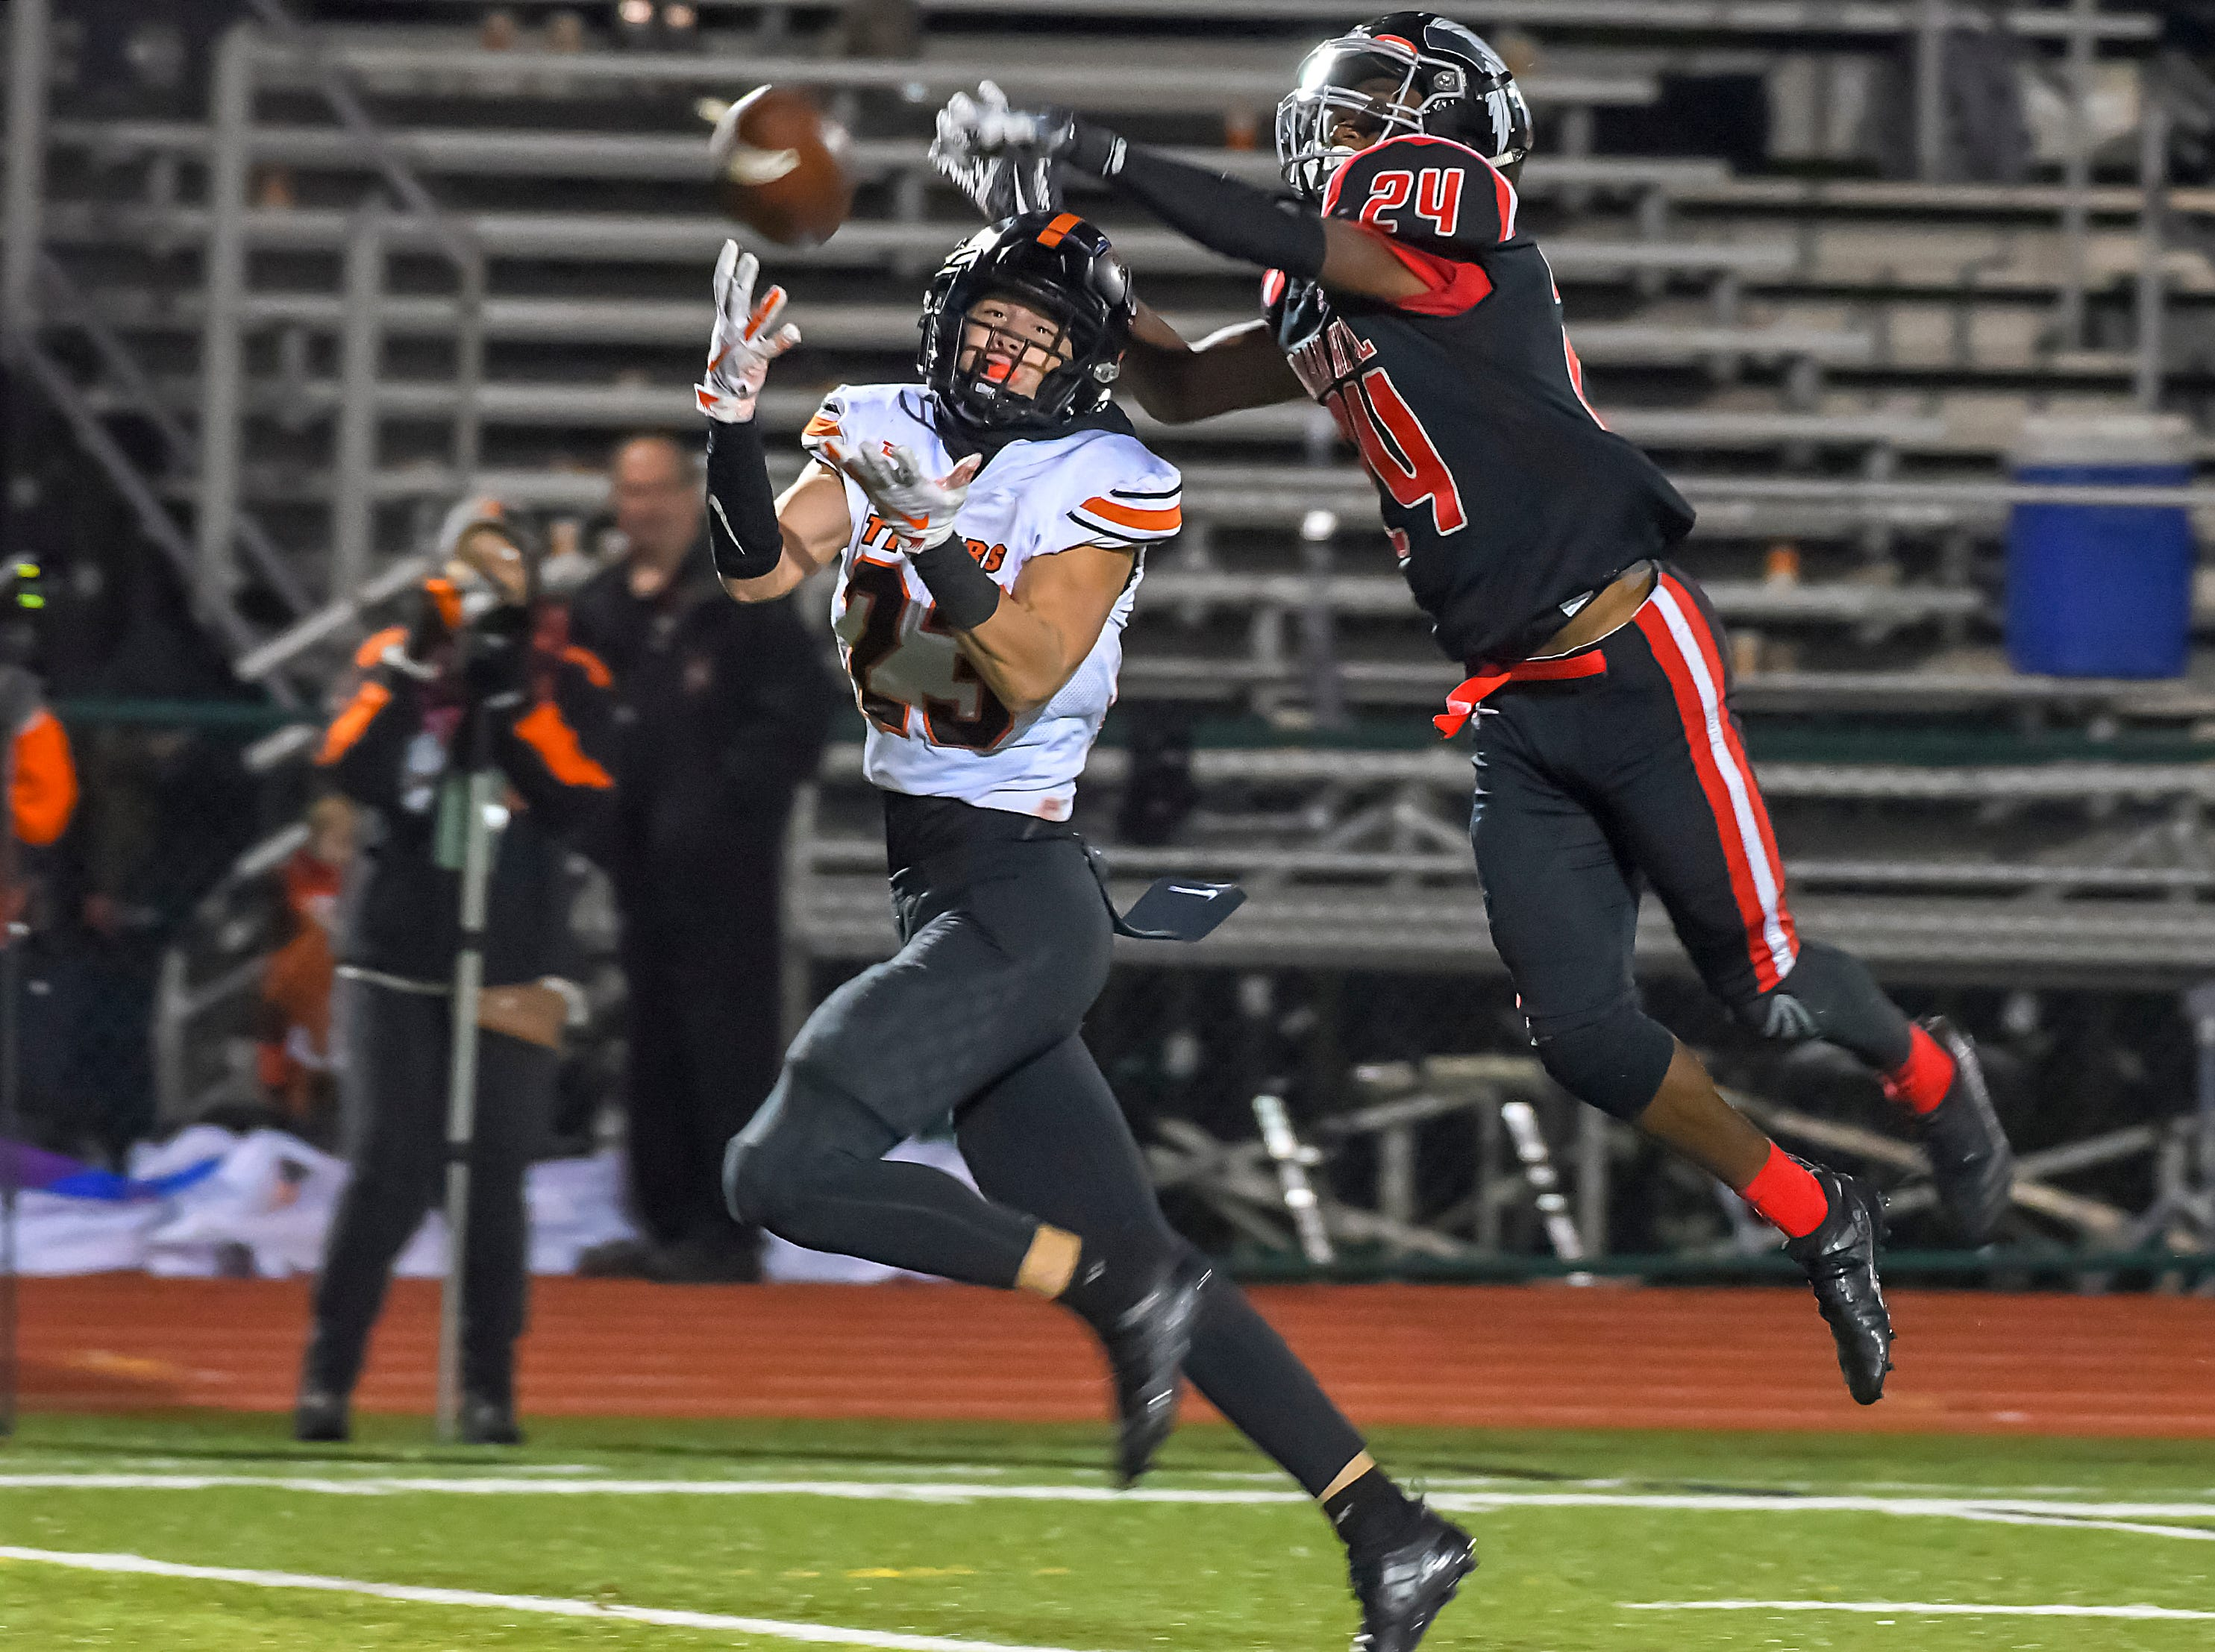 Easton Wolf of Waverly (23) cannot come up with a catch defended by Amari Whitehead of Indian Hill in the OHSAA D4 Region 16 Playoffs at Indian Hill High School, Saturday, Nov. 3, 2018